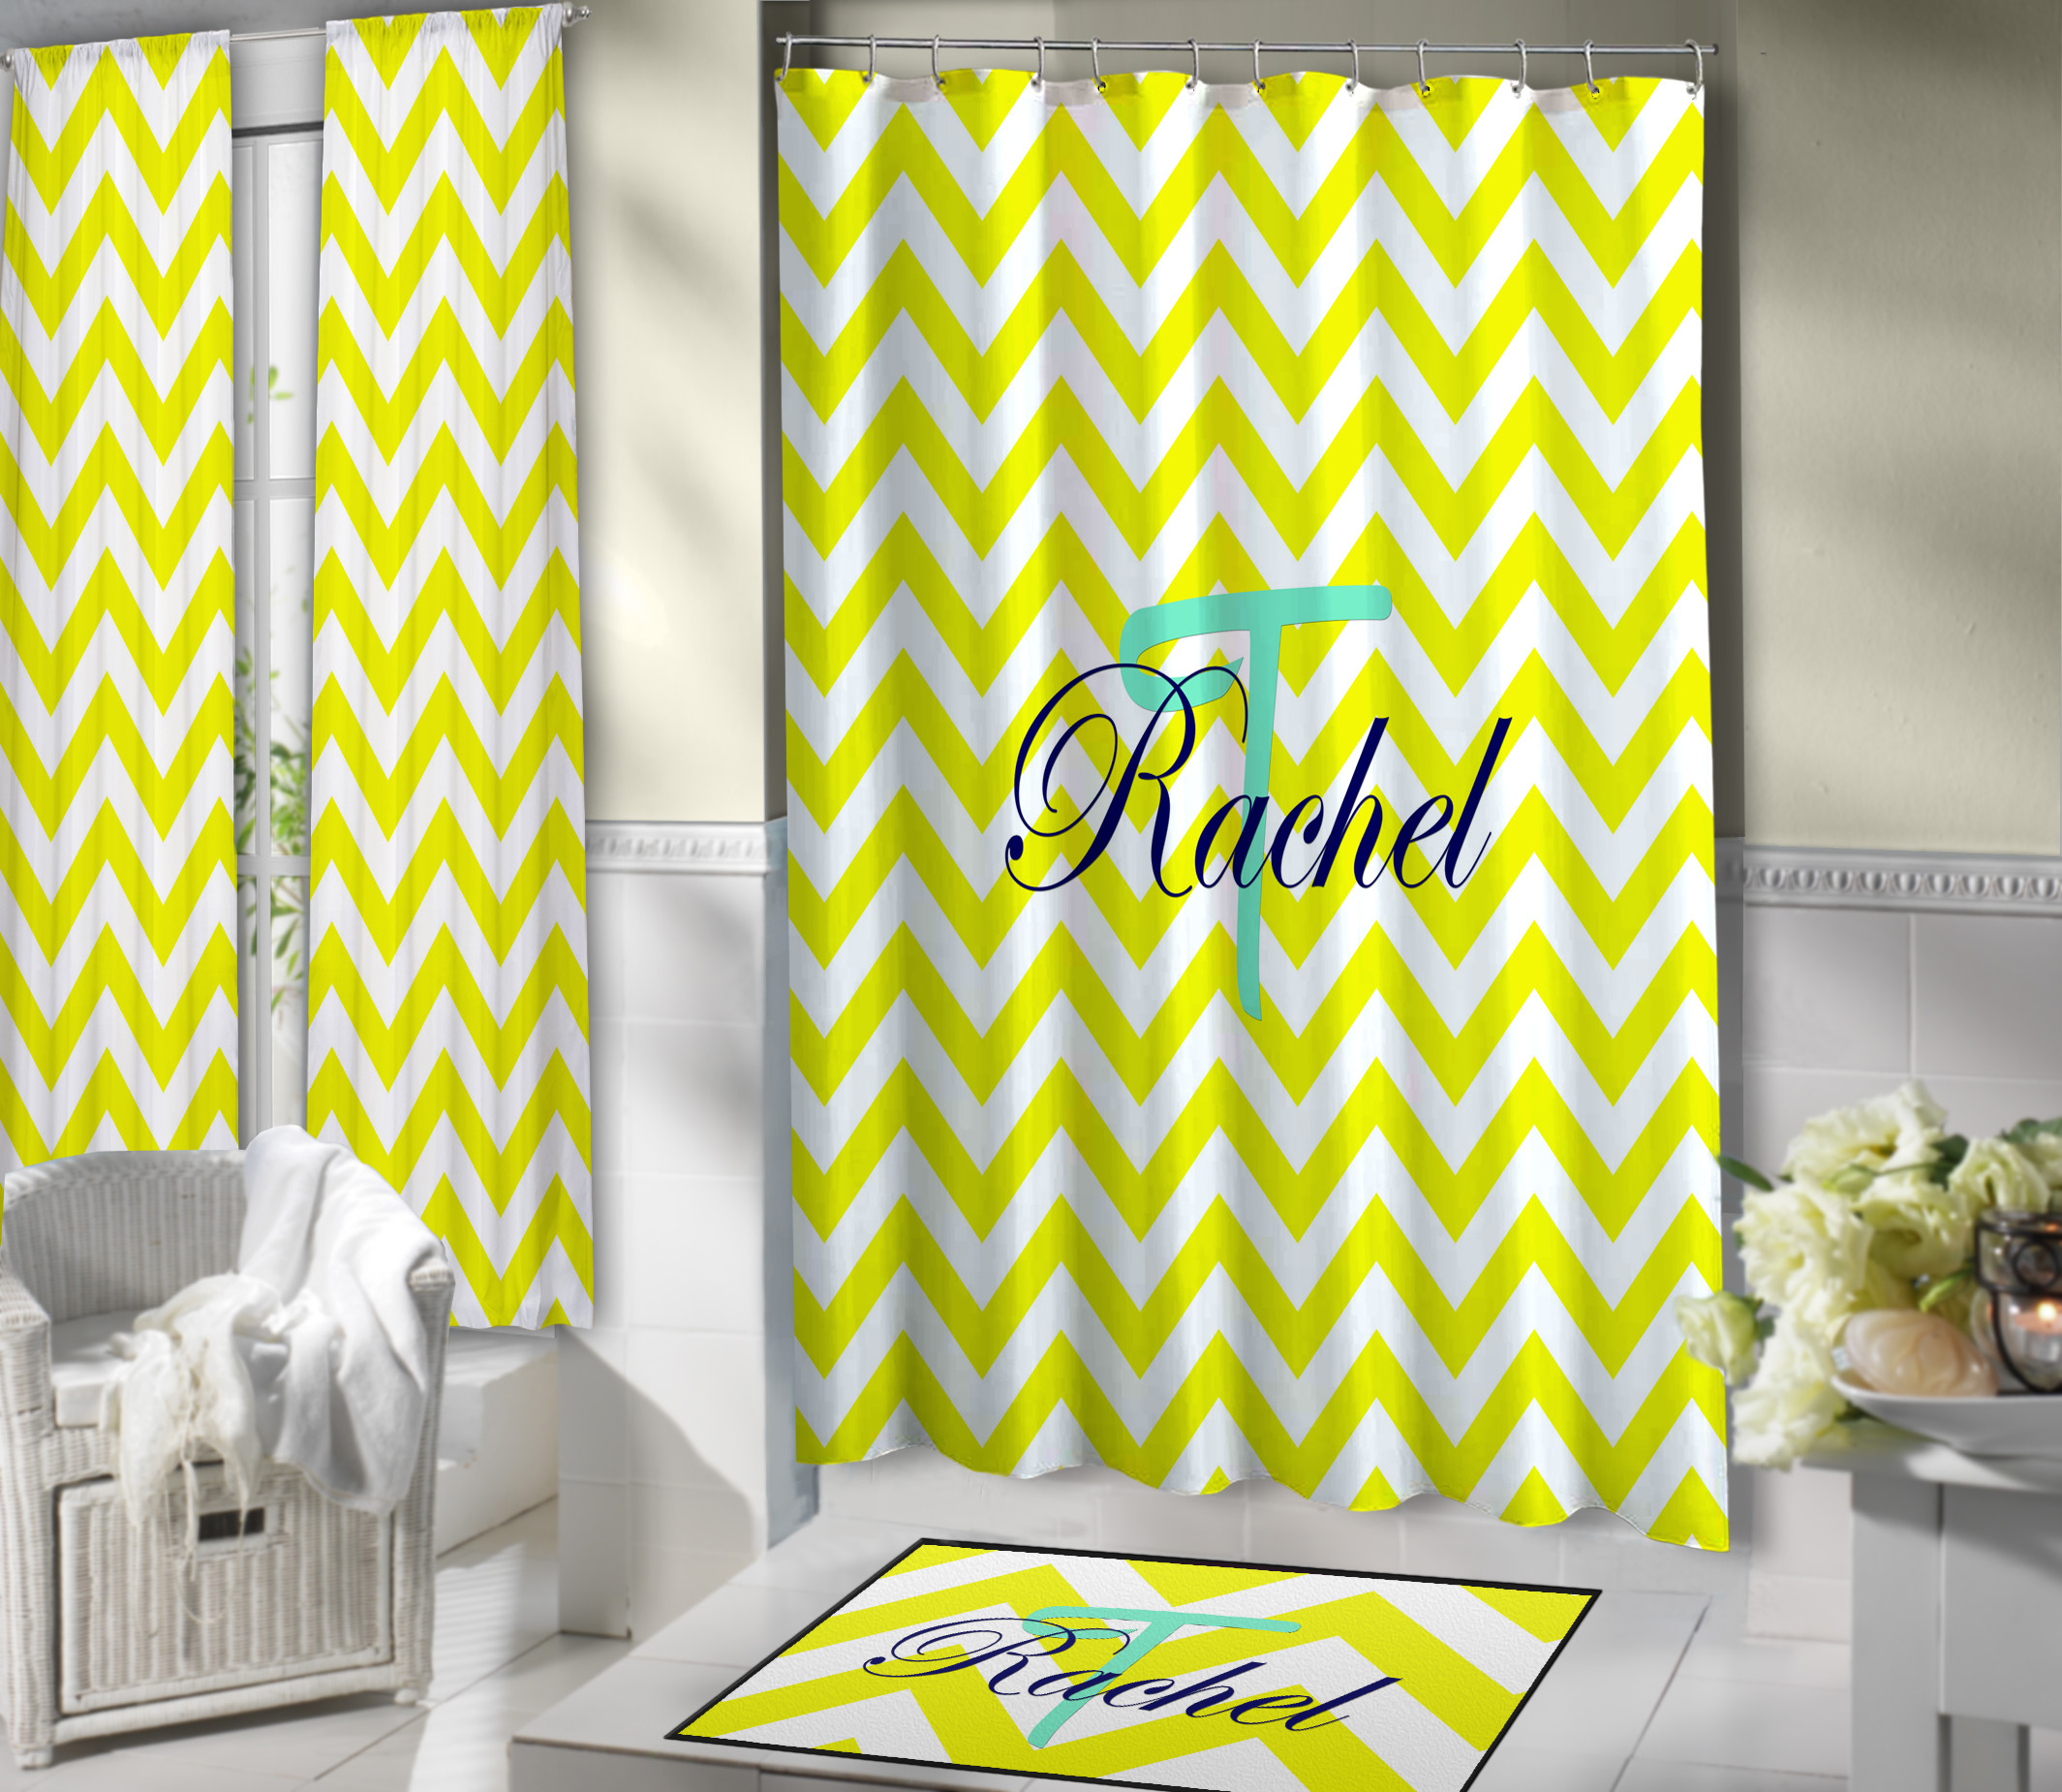 Bathroom Shower Curtain Yellow And White Dorm Bathroom Shower Curtain With Blue Personalization 94